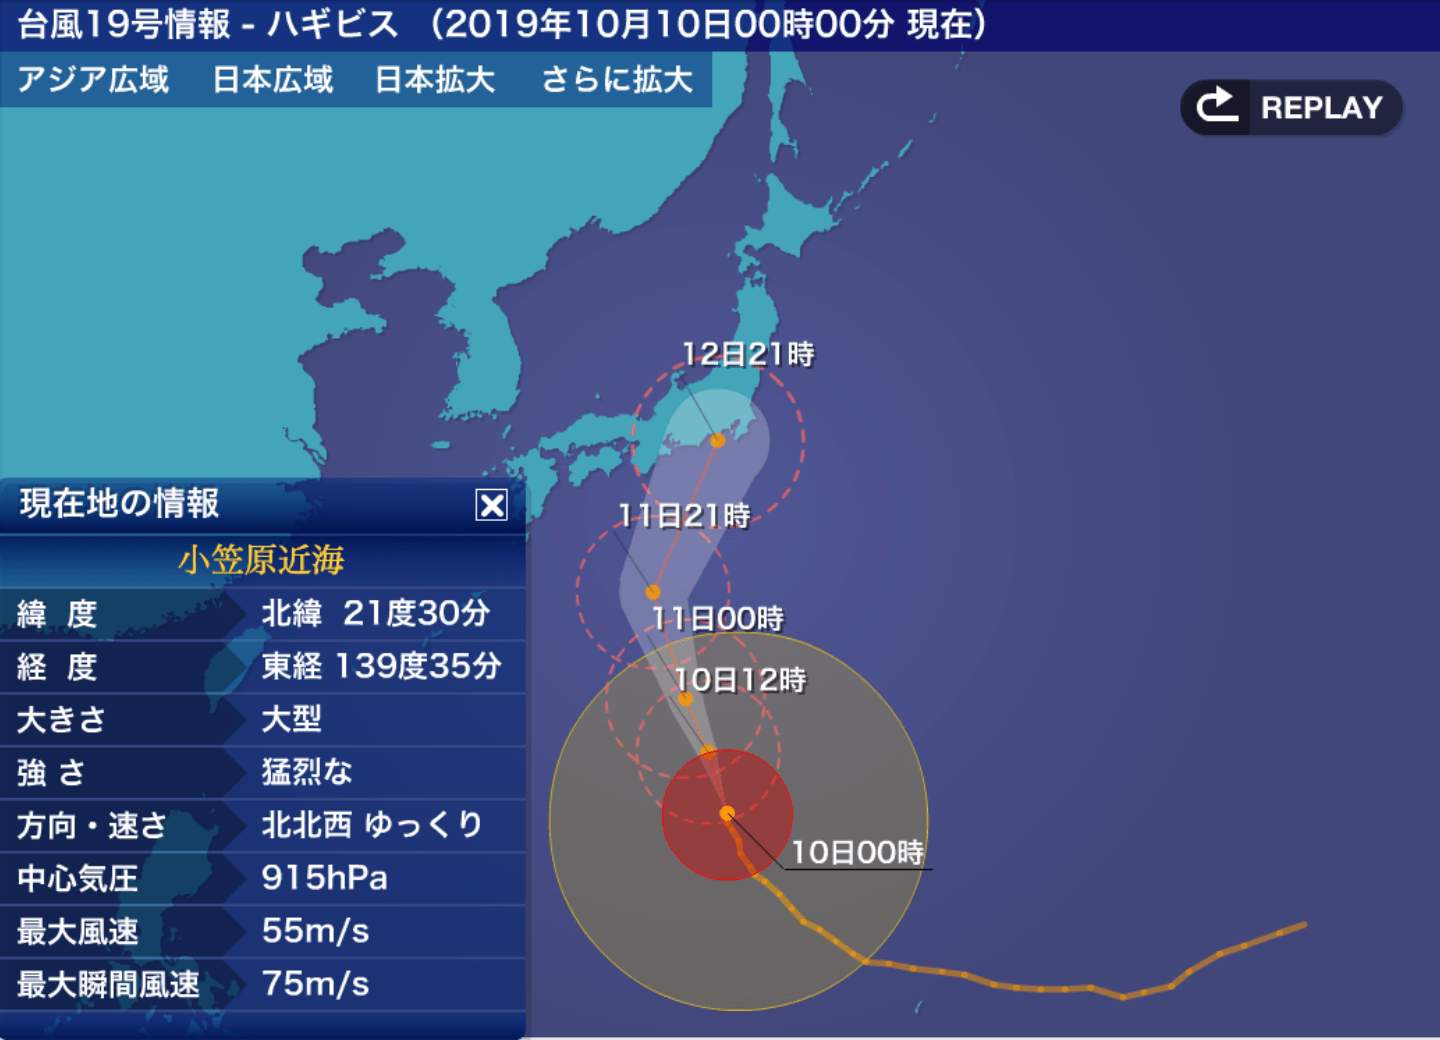 http://weathernews.jp/typhoon/ より